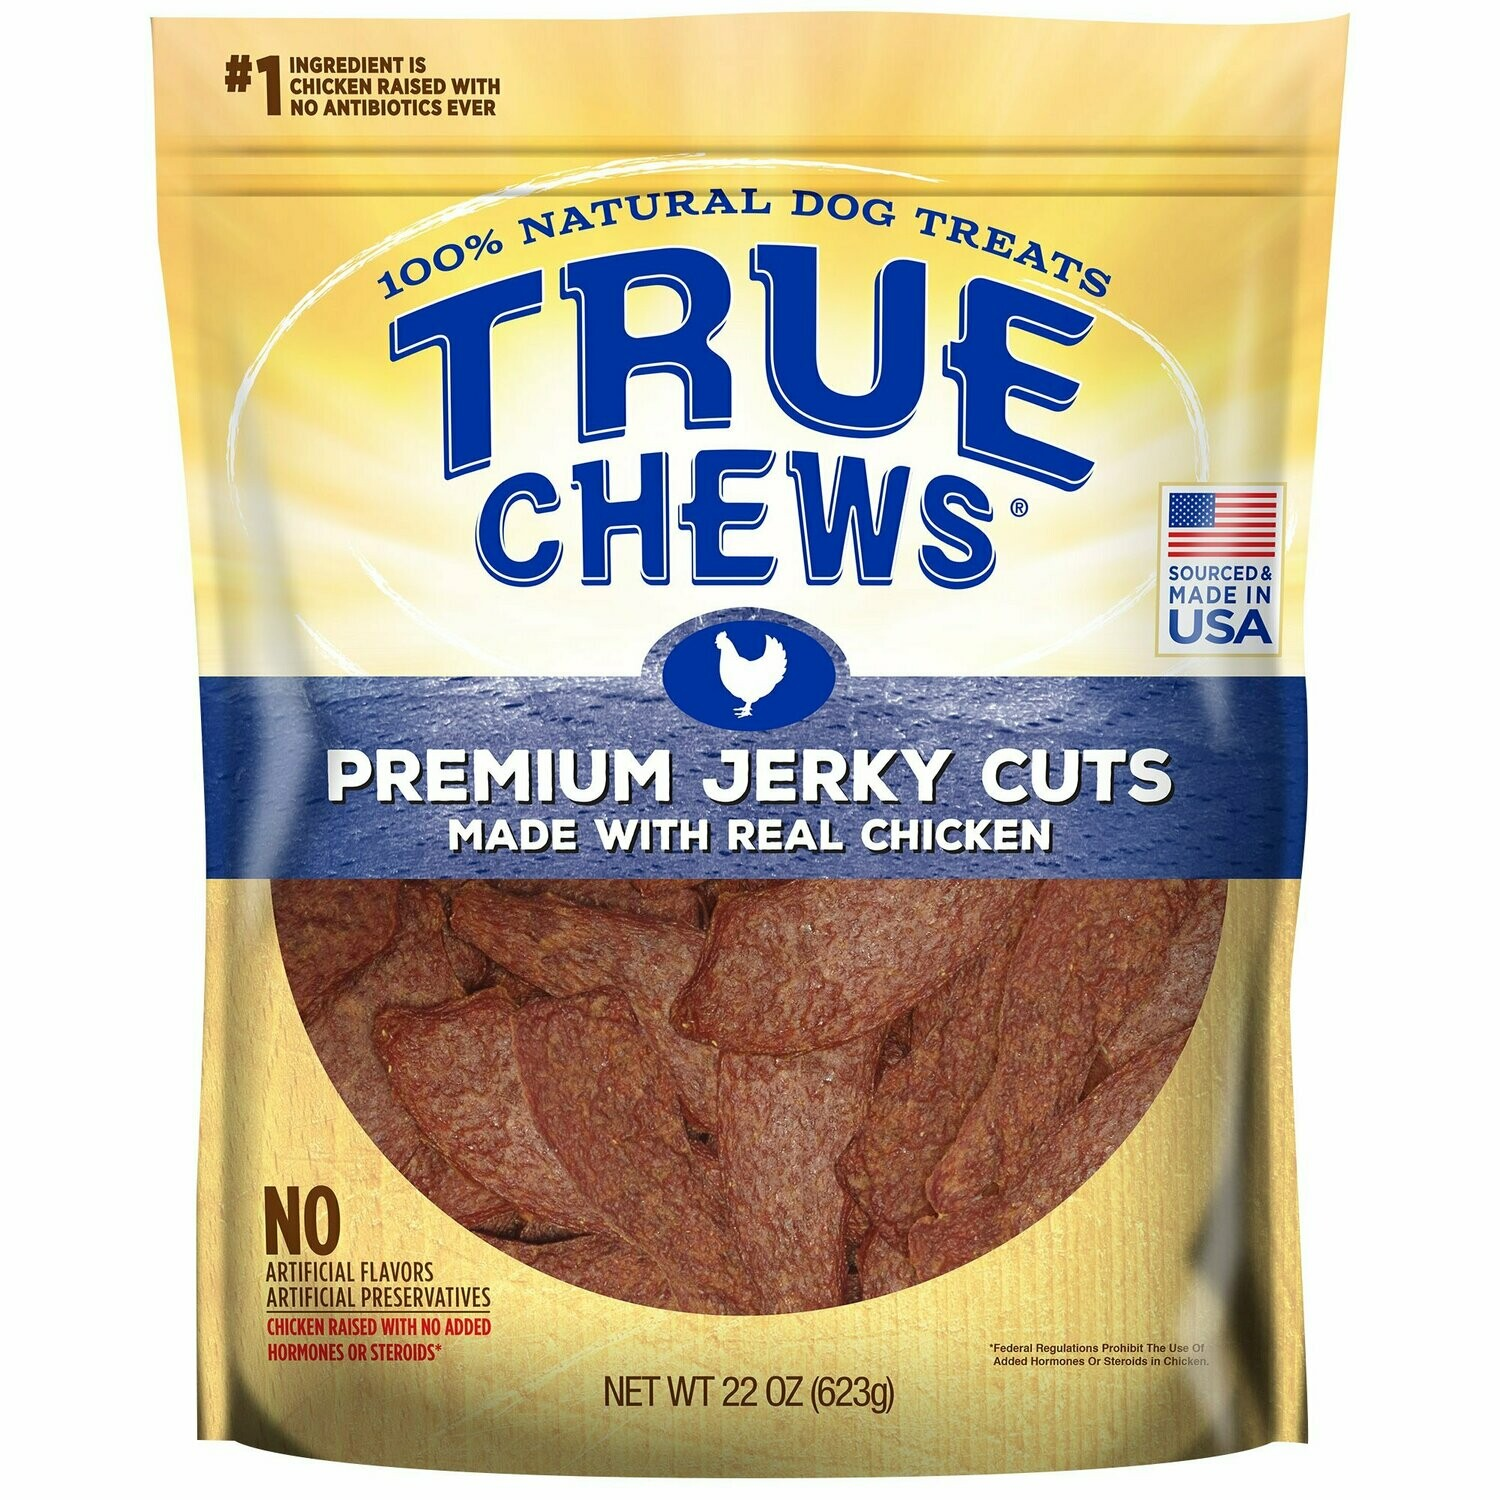 True Chews Premium Jerky Cuts Made with Real Chicken Natural Dog Treats, 22 oz. (5/19) (T.SINGLES)